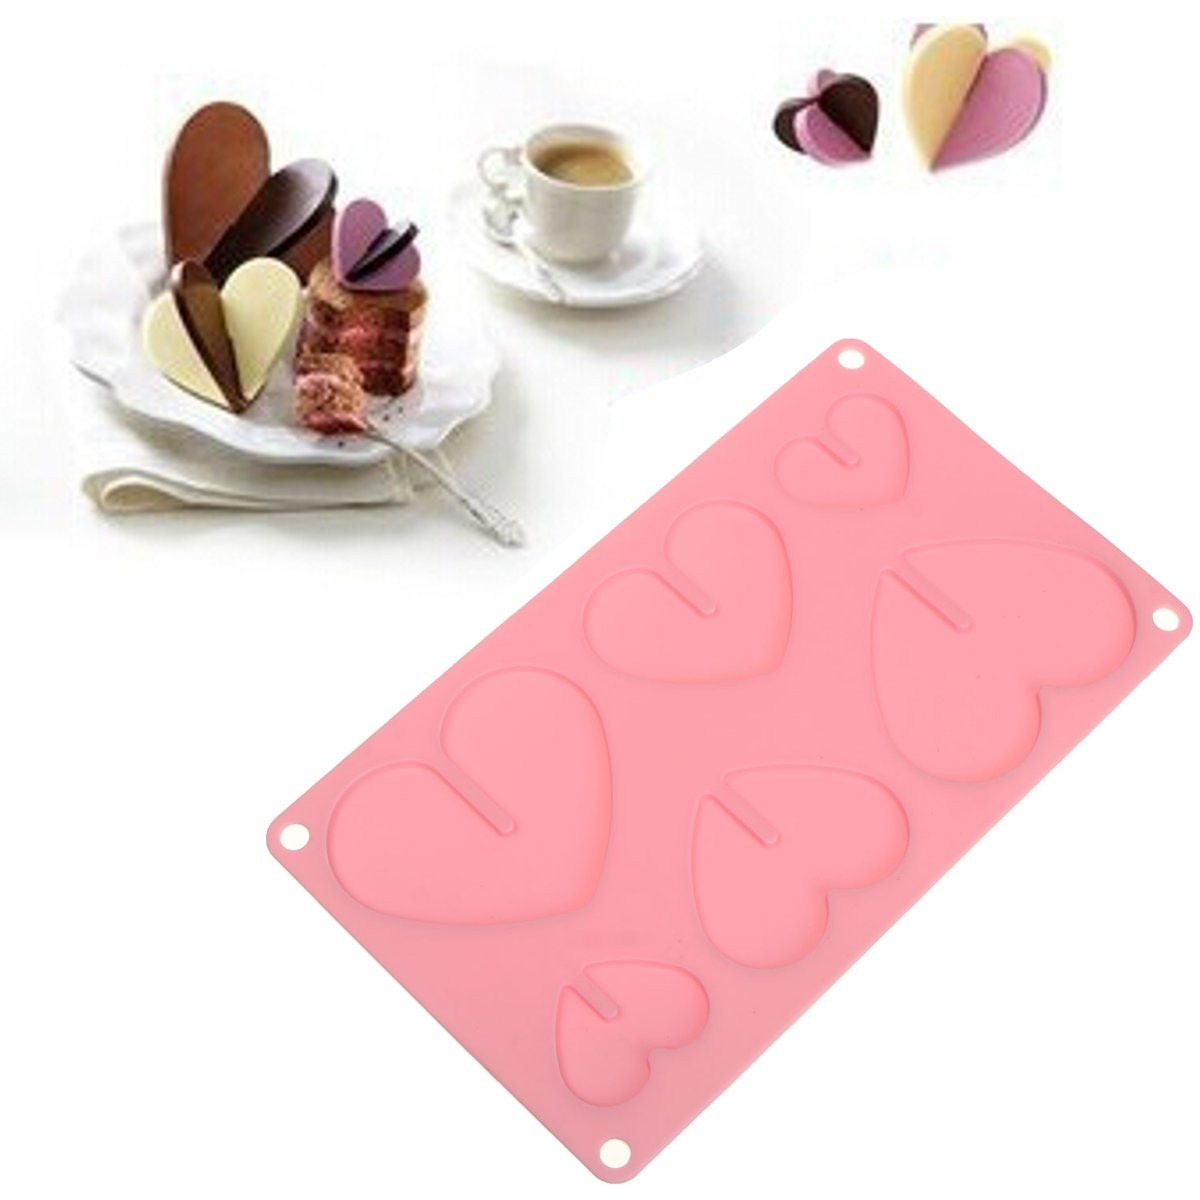 3D Heart Silicone Cake Candy Fondant Craft Chocolate Cookies Ice Cube Soap Decorating Baking Mould